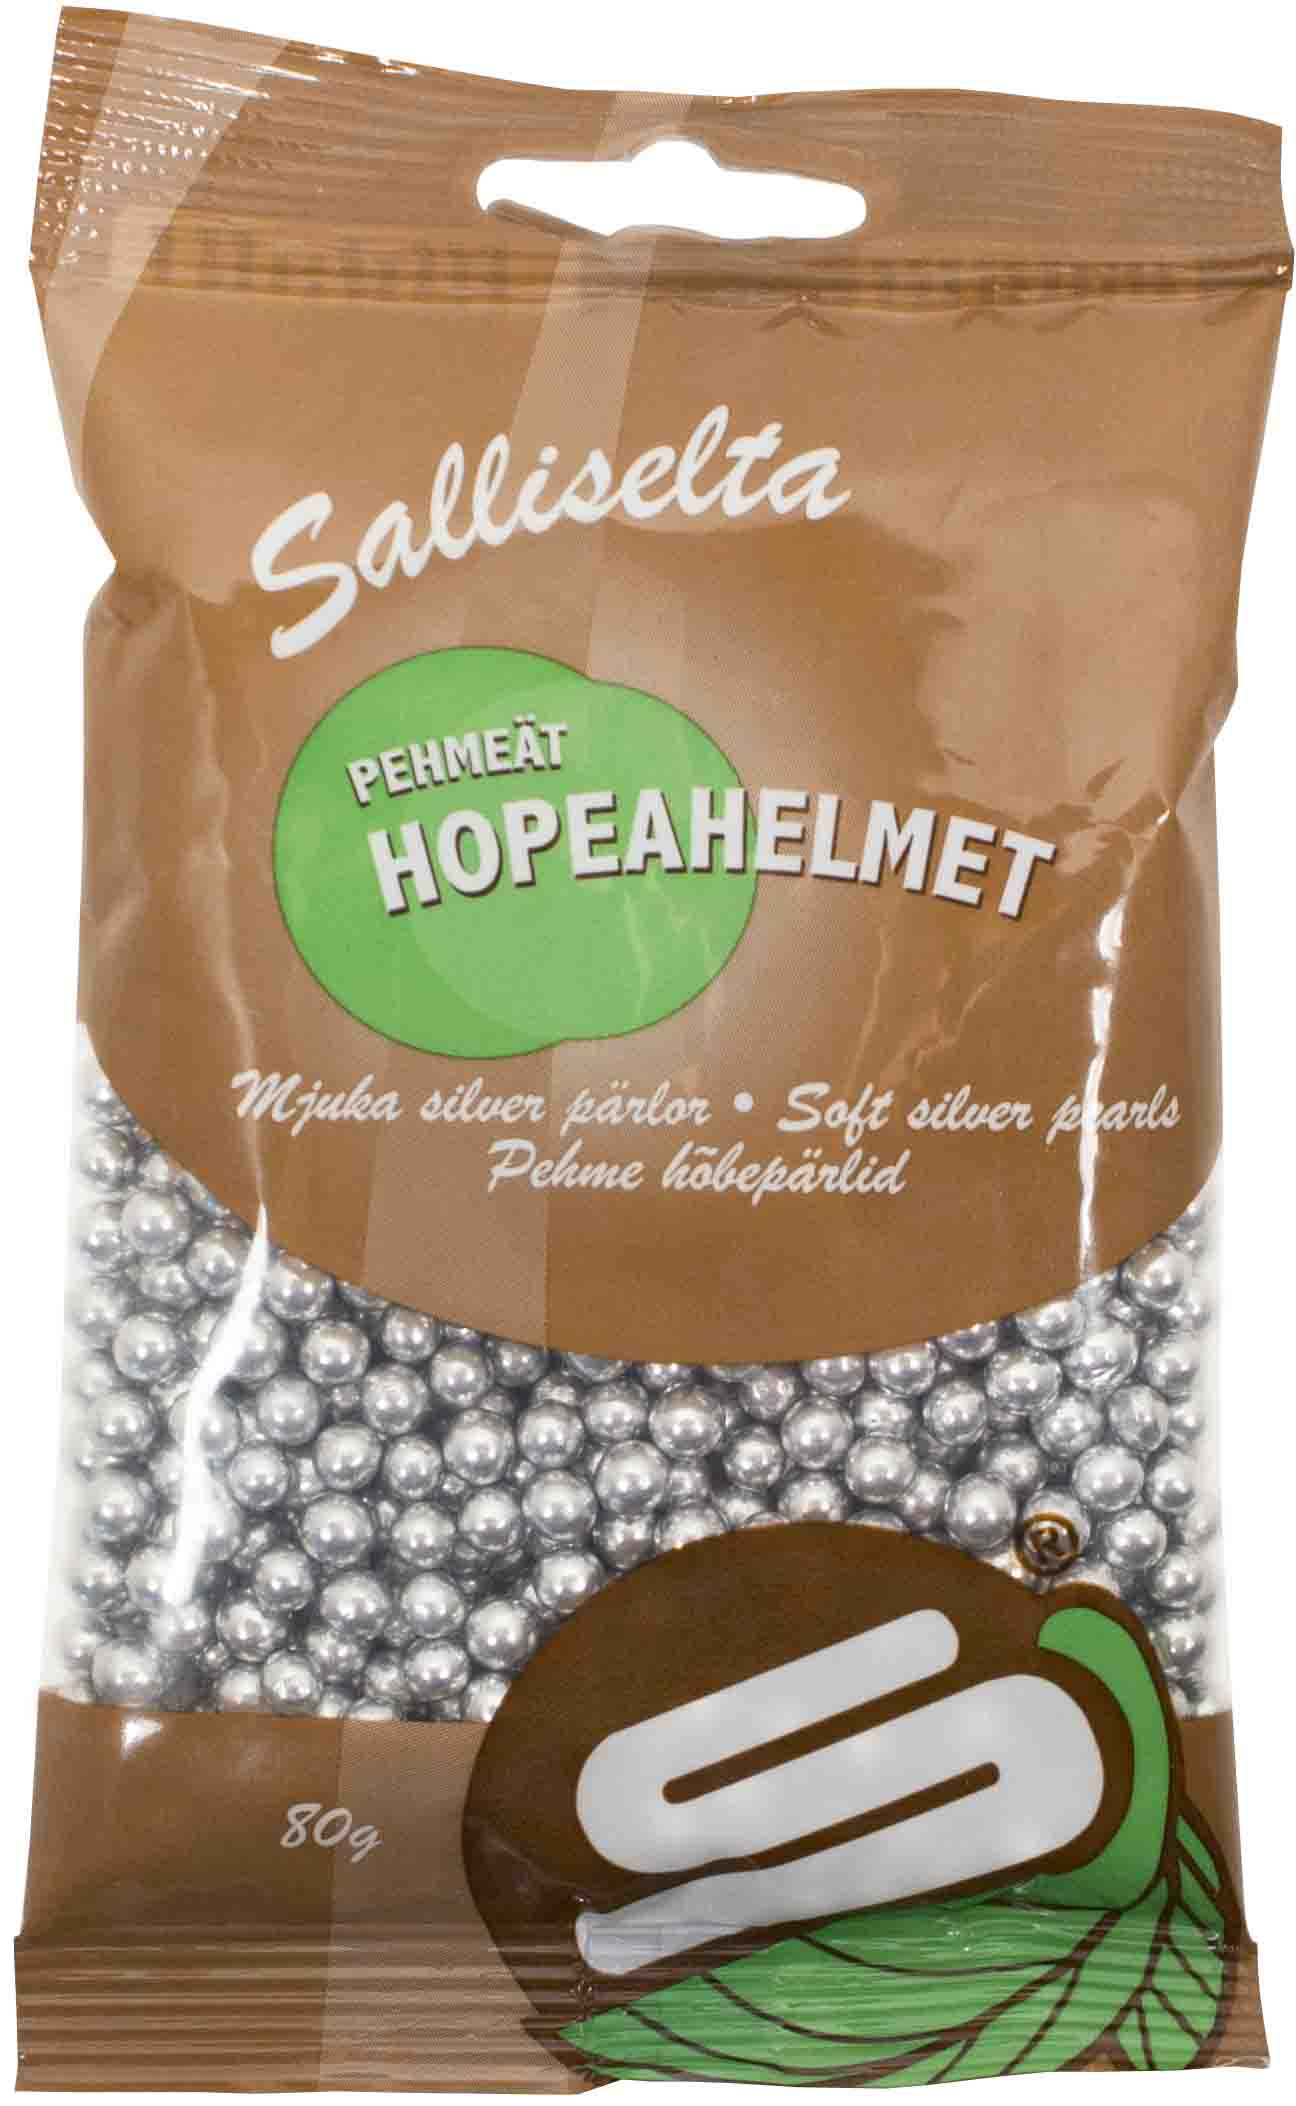 Soft pearls silver 80g